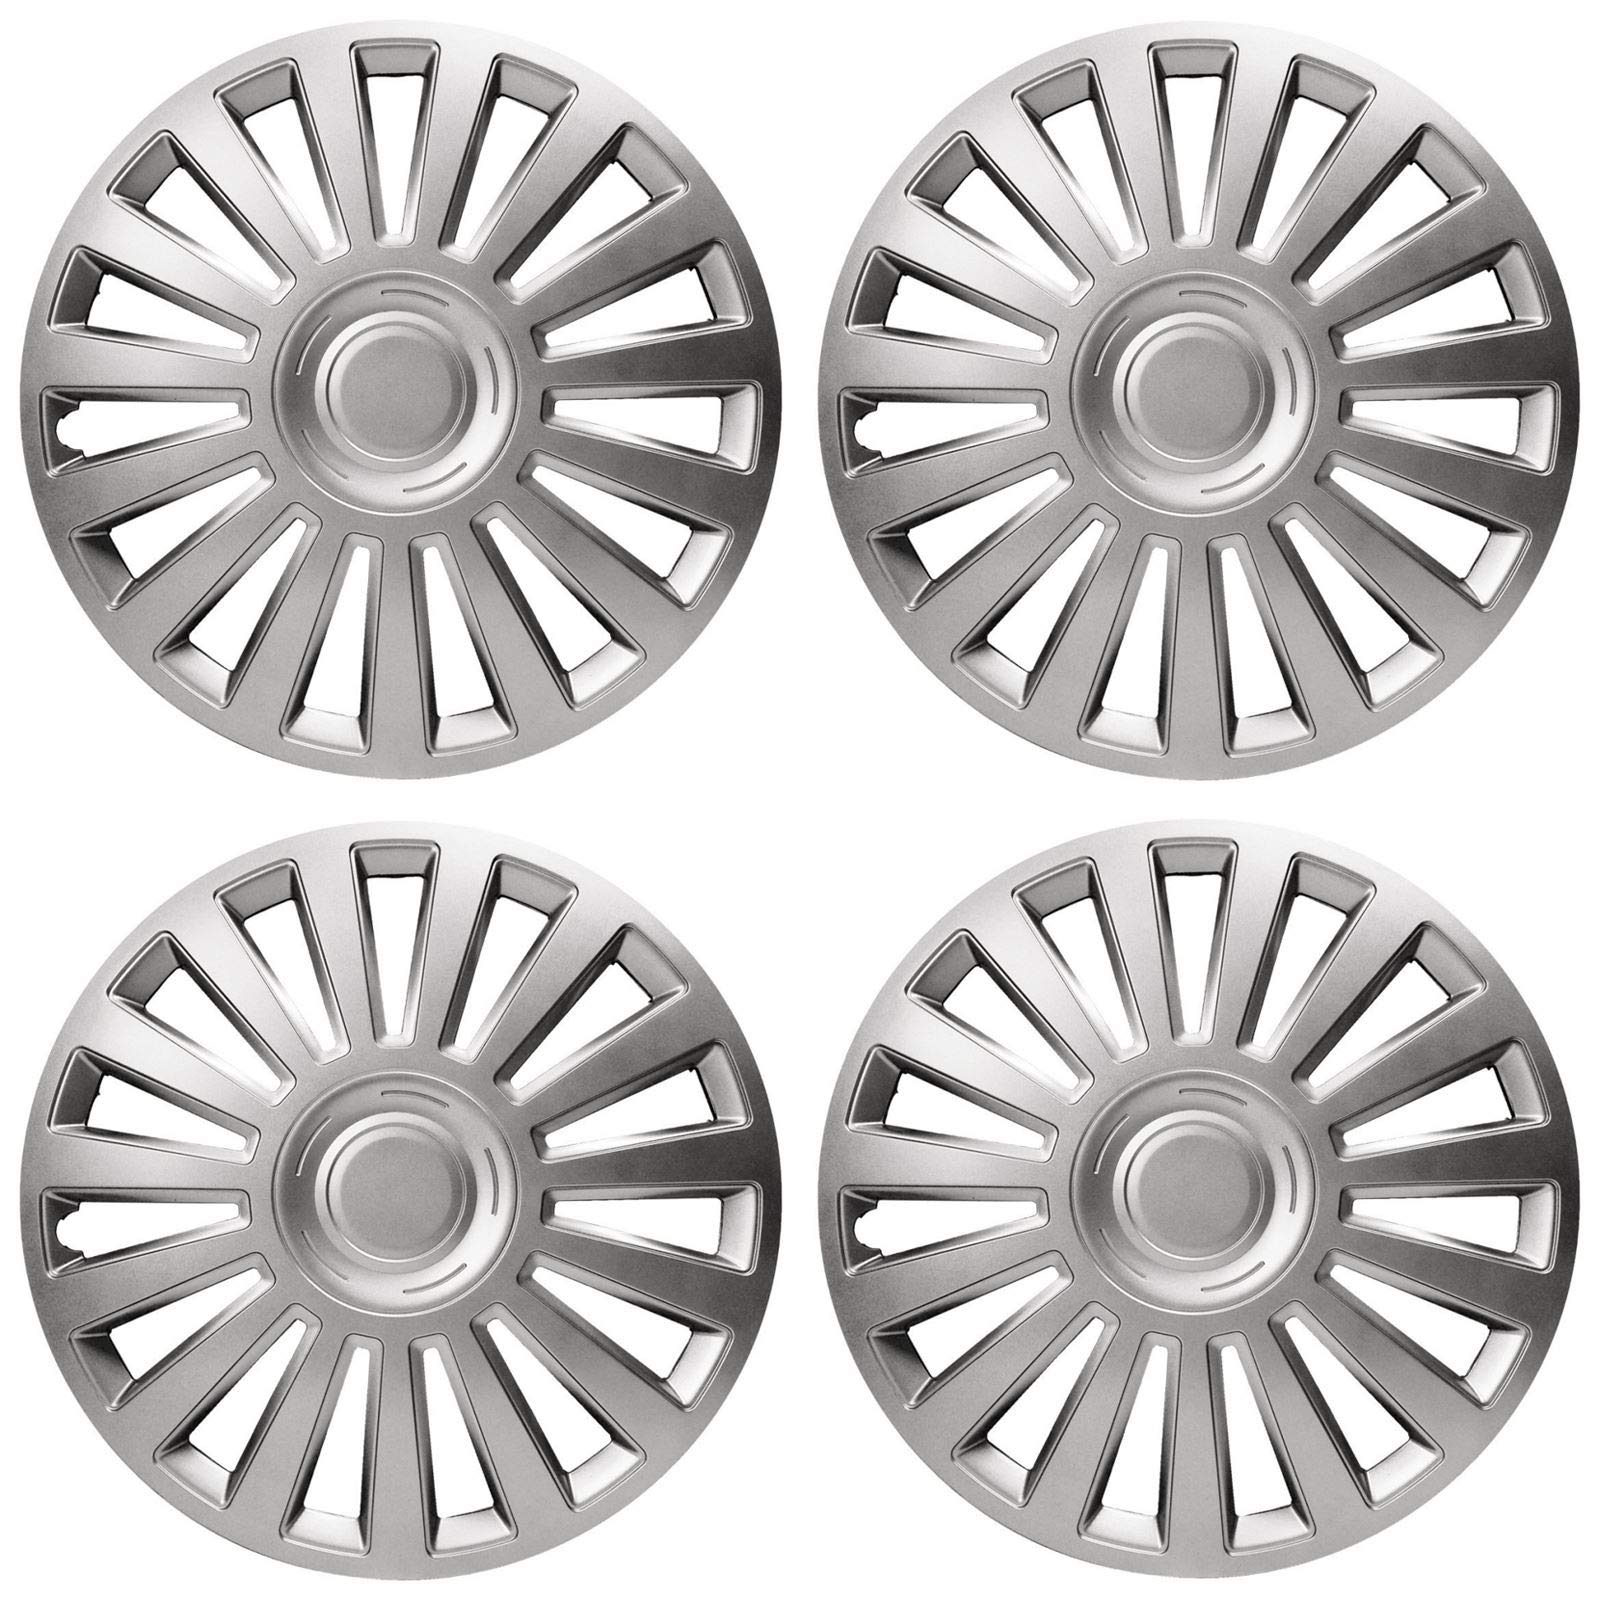 UKB4C 4x Wheel Trims Hub Caps 14 Covers fits Peugeot 106 107 108 206 207 208 in Silver